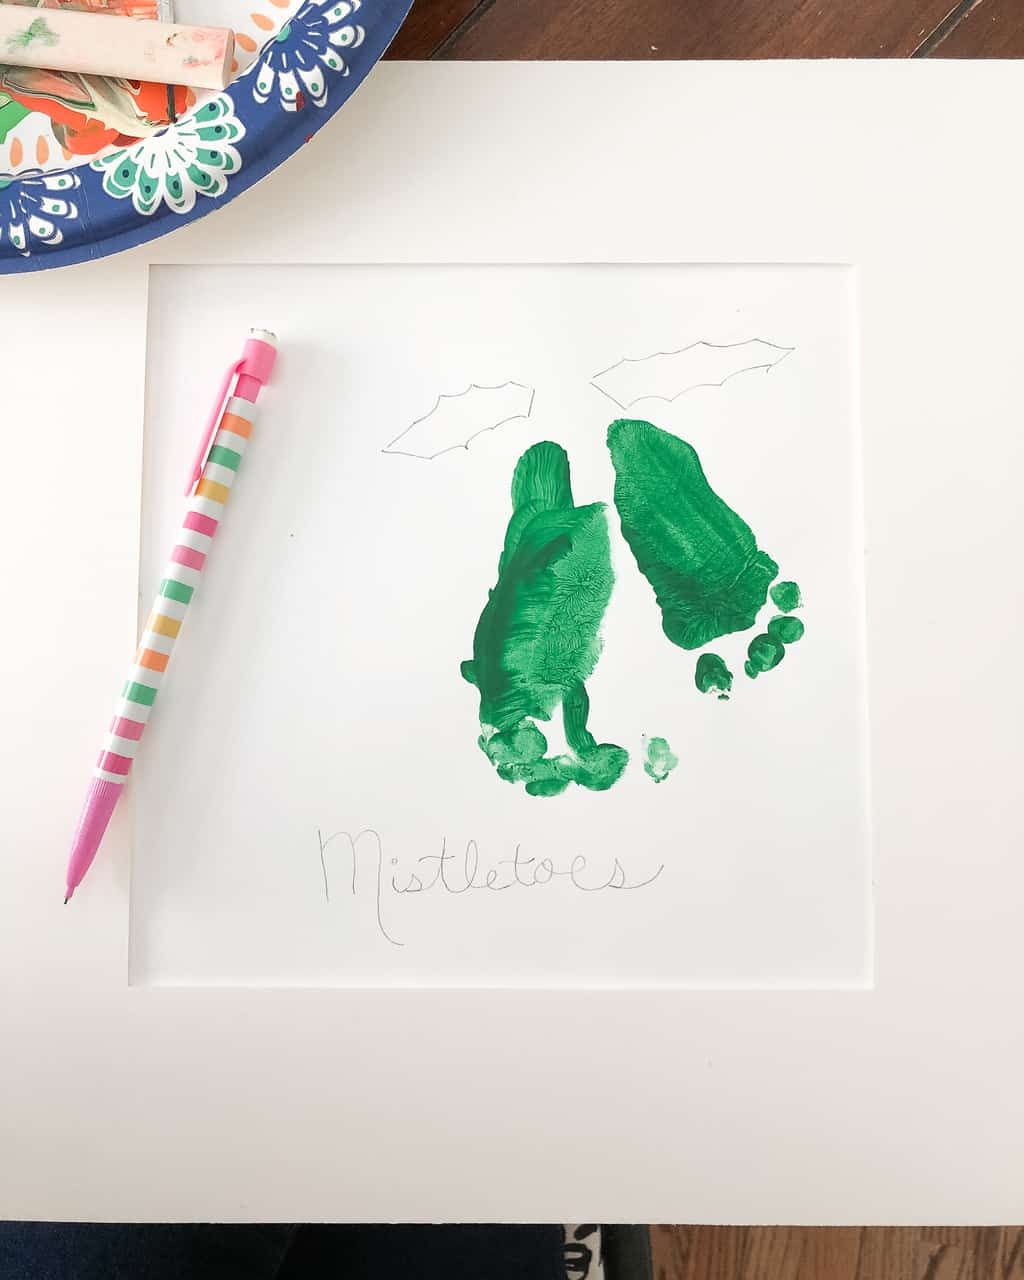 Mistletoe Footprint Art for Grandparents - Christmas Gifts - #mistletoesfootprintcraft